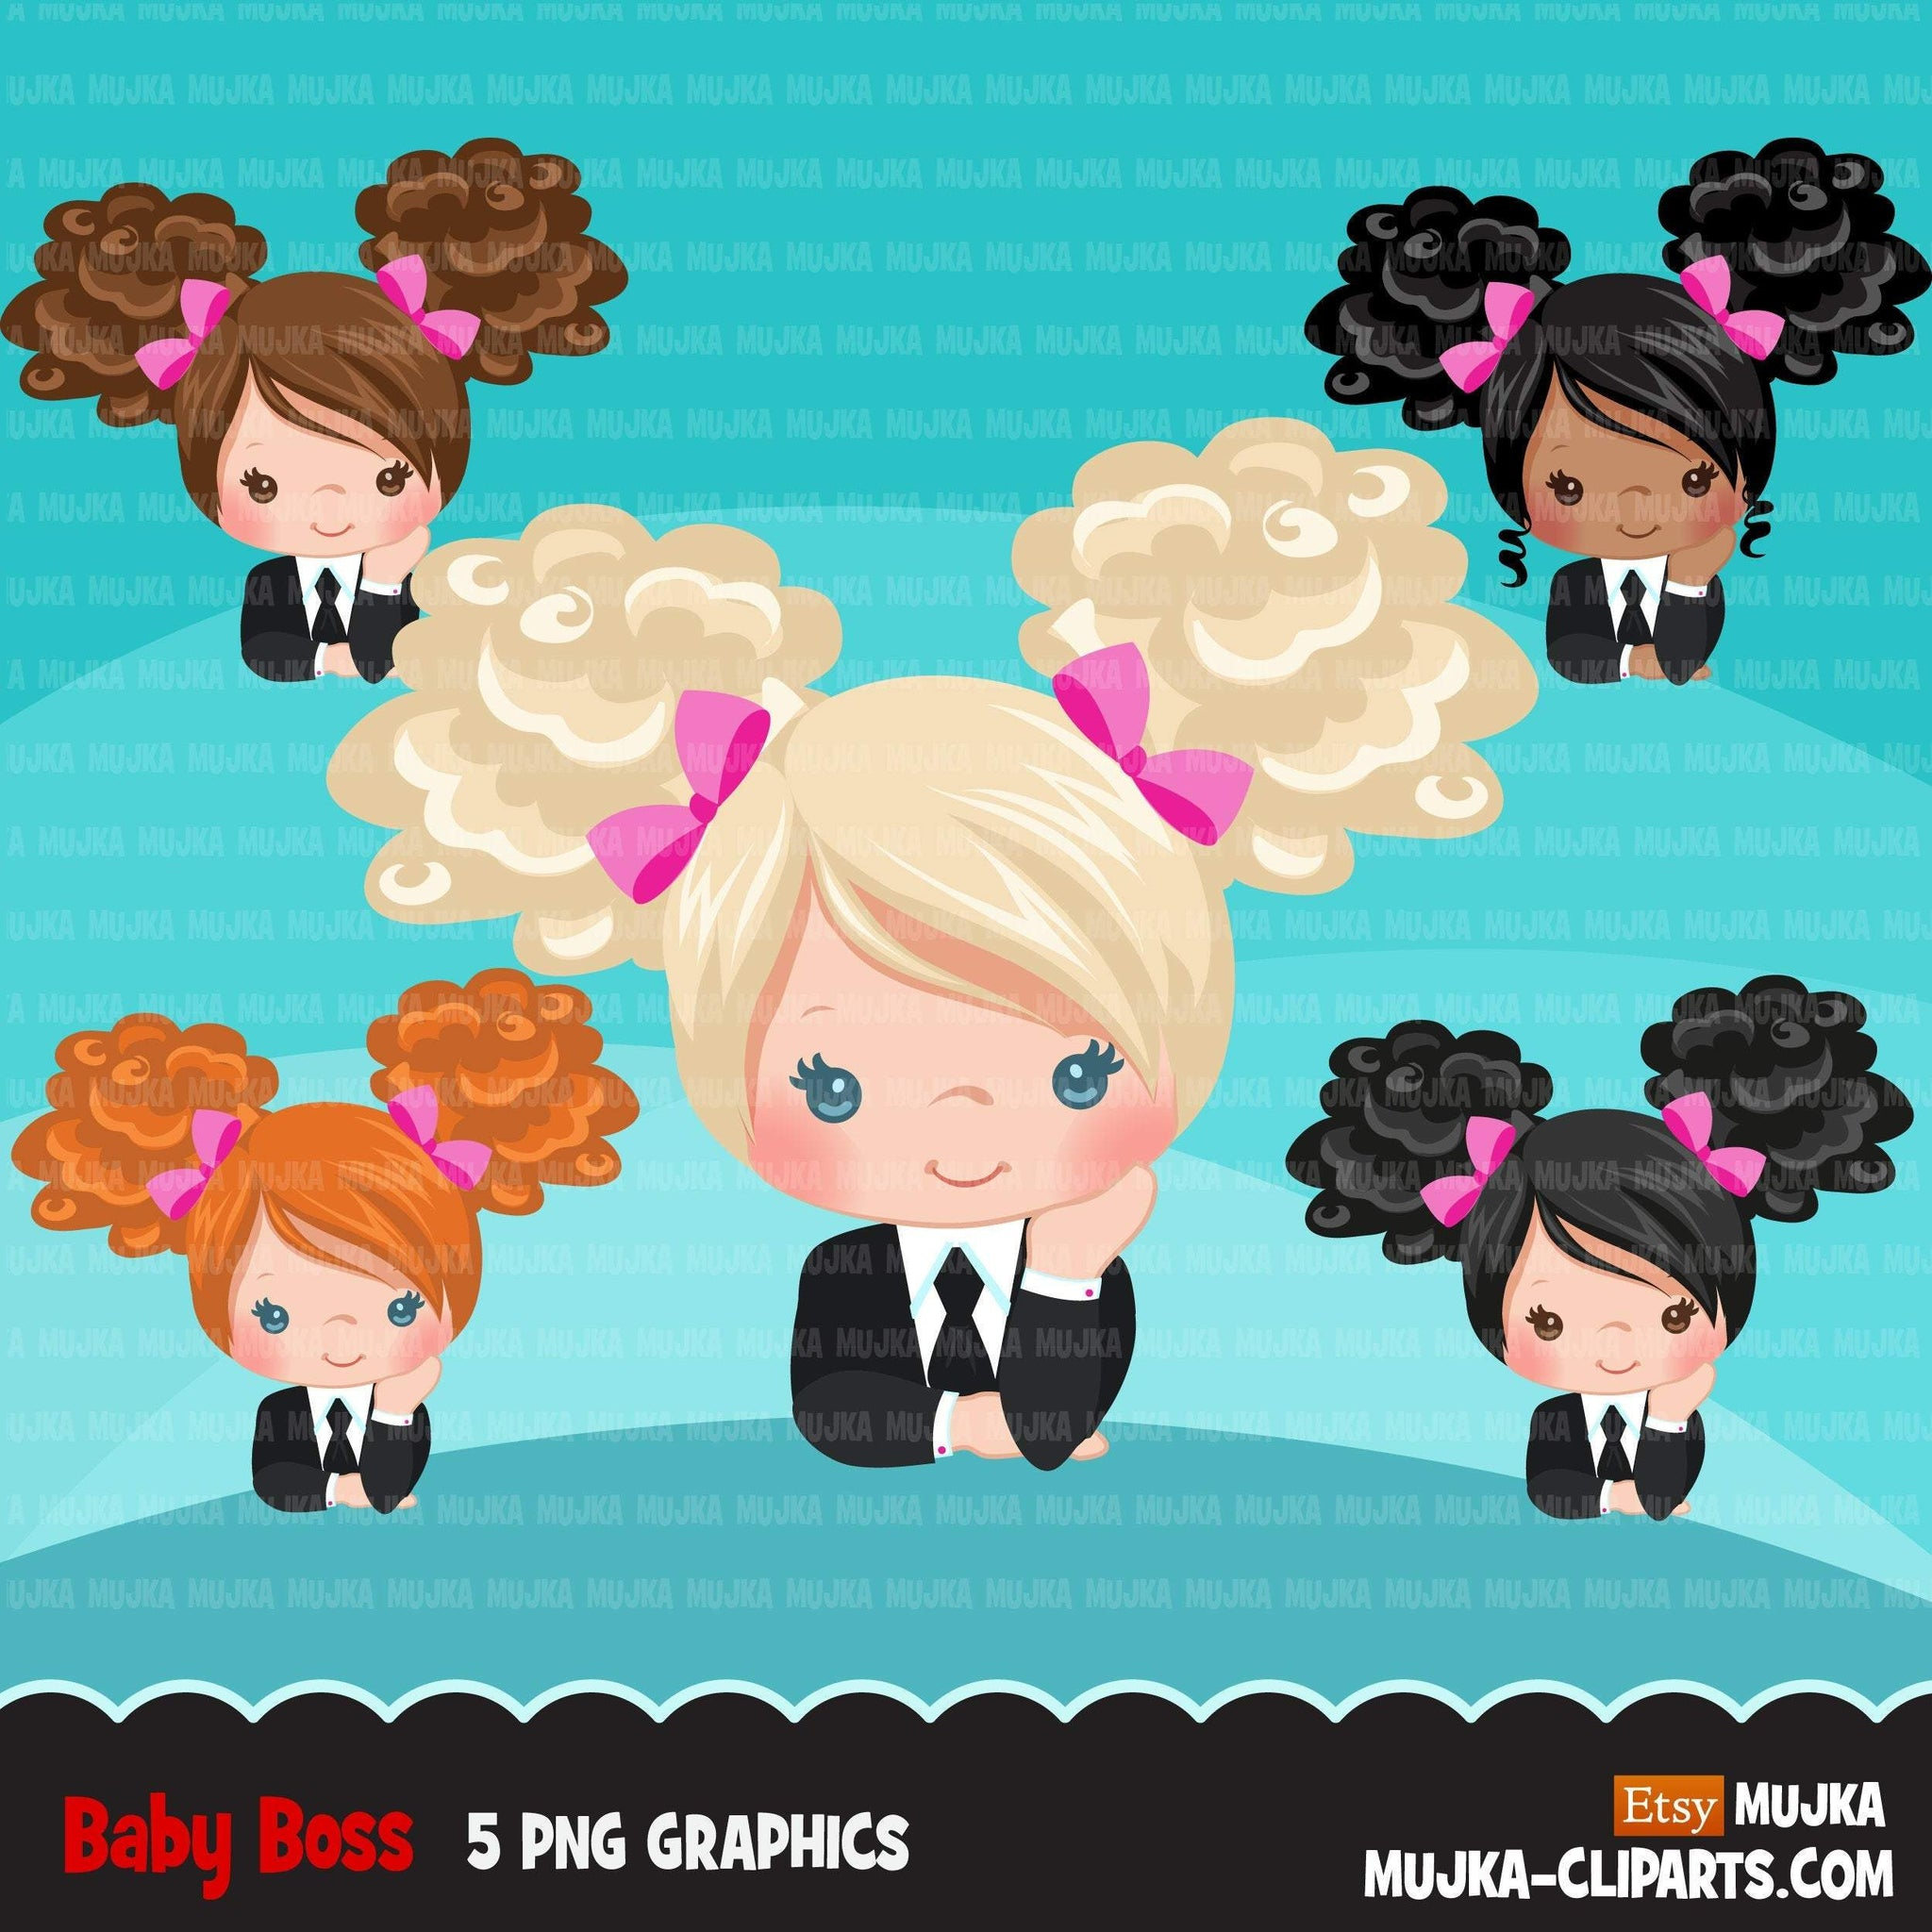 Boss baby clipart, toddler with business suit graphics, afro puff curly girls, commercial use clip art